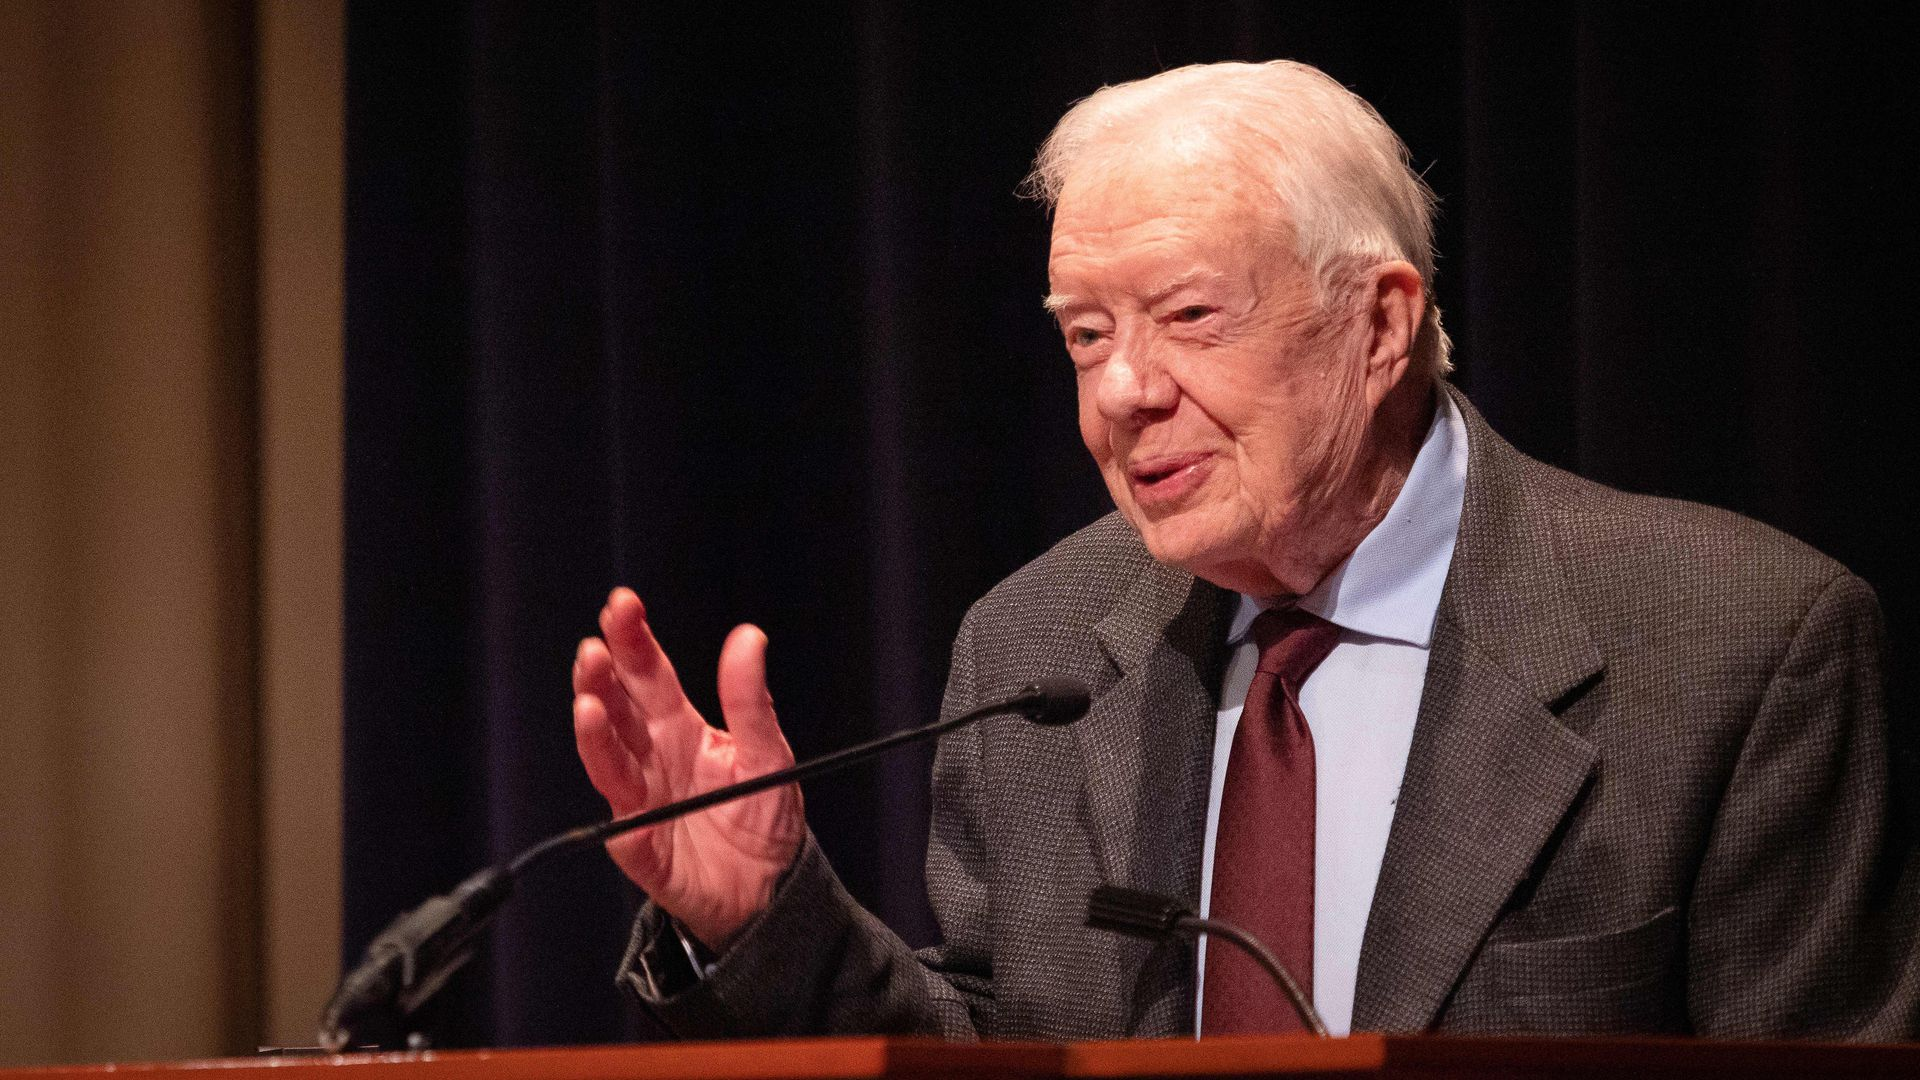 Former U.S. President Jimmy Carter speaks during the symposium commemorating the 40th anniversary of the normalization of US-China relations at the Carter Center on January 18